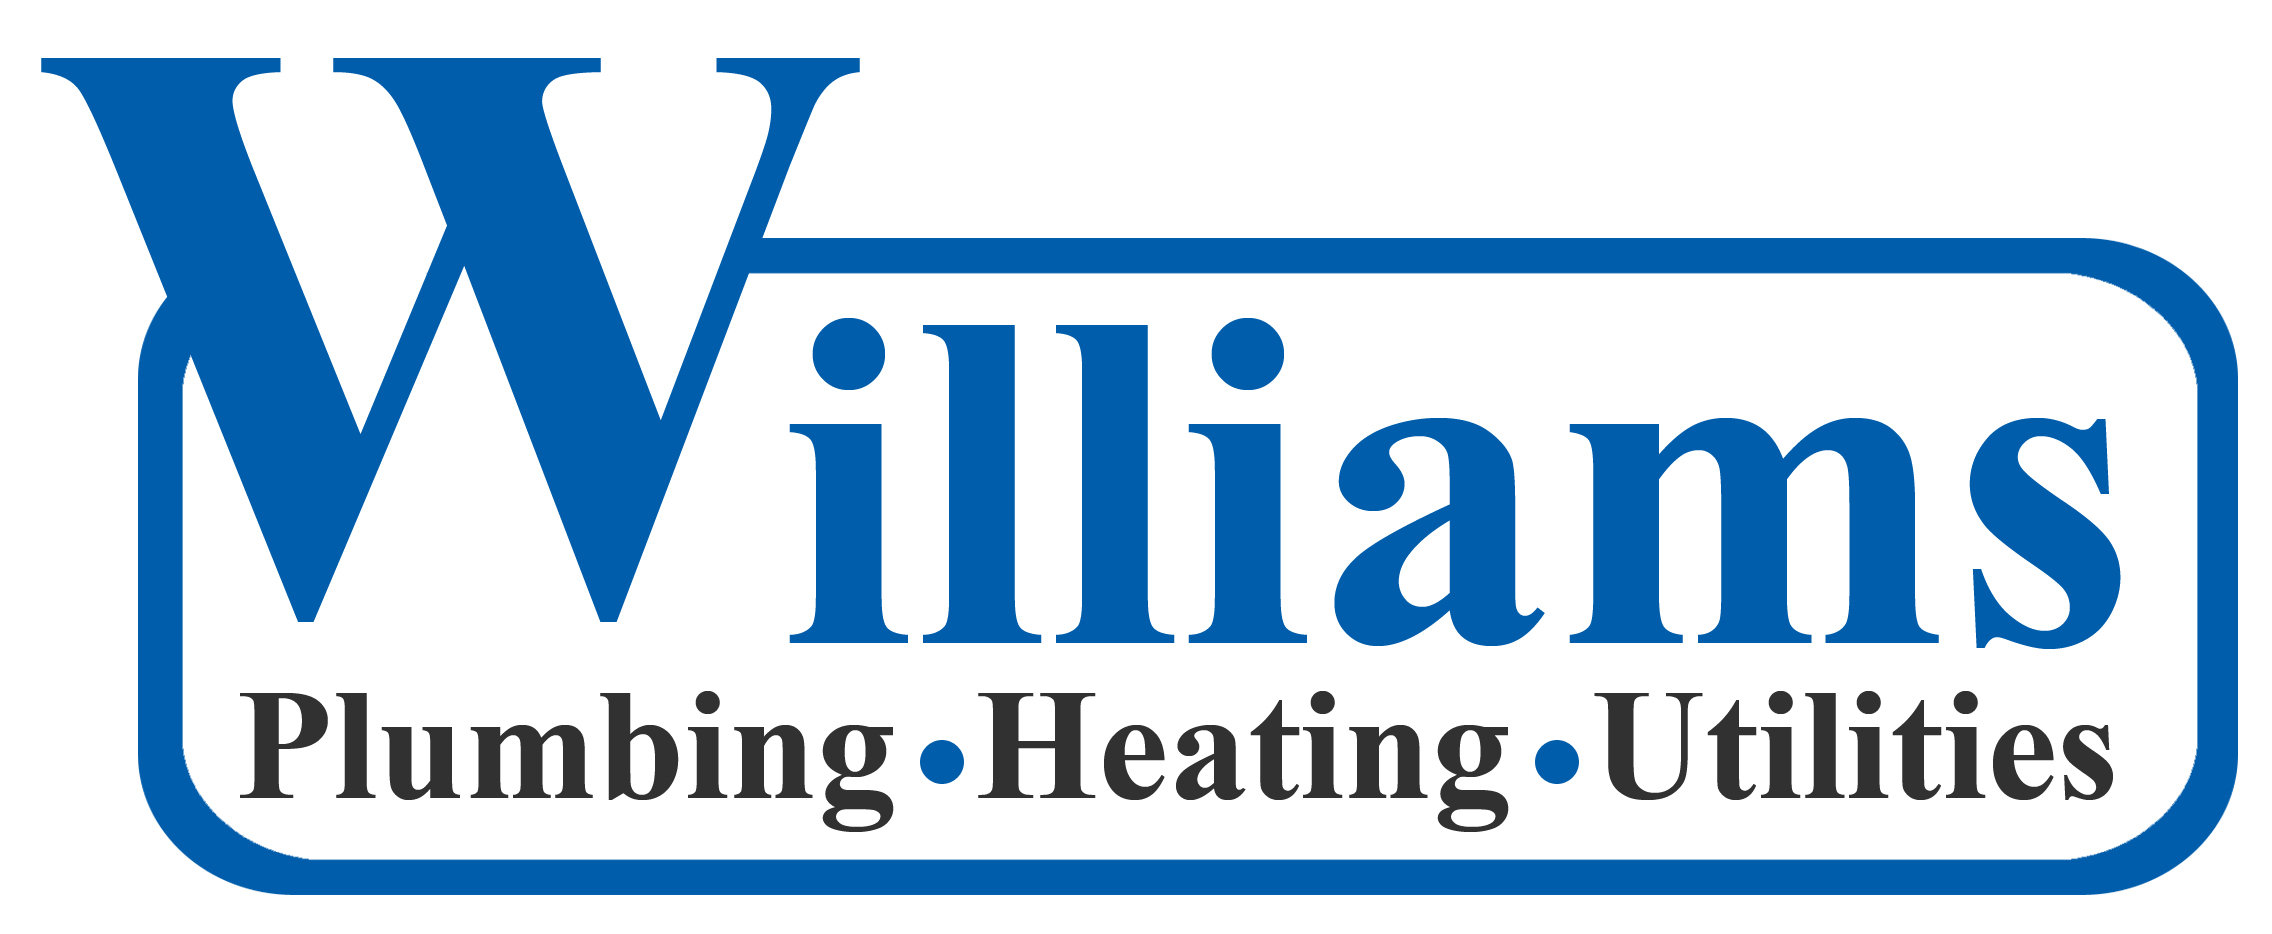 Plumber in MT Bozeman 59771 Williams Plumbing and Heating 2131 Industrial Drive  (406)587-0969